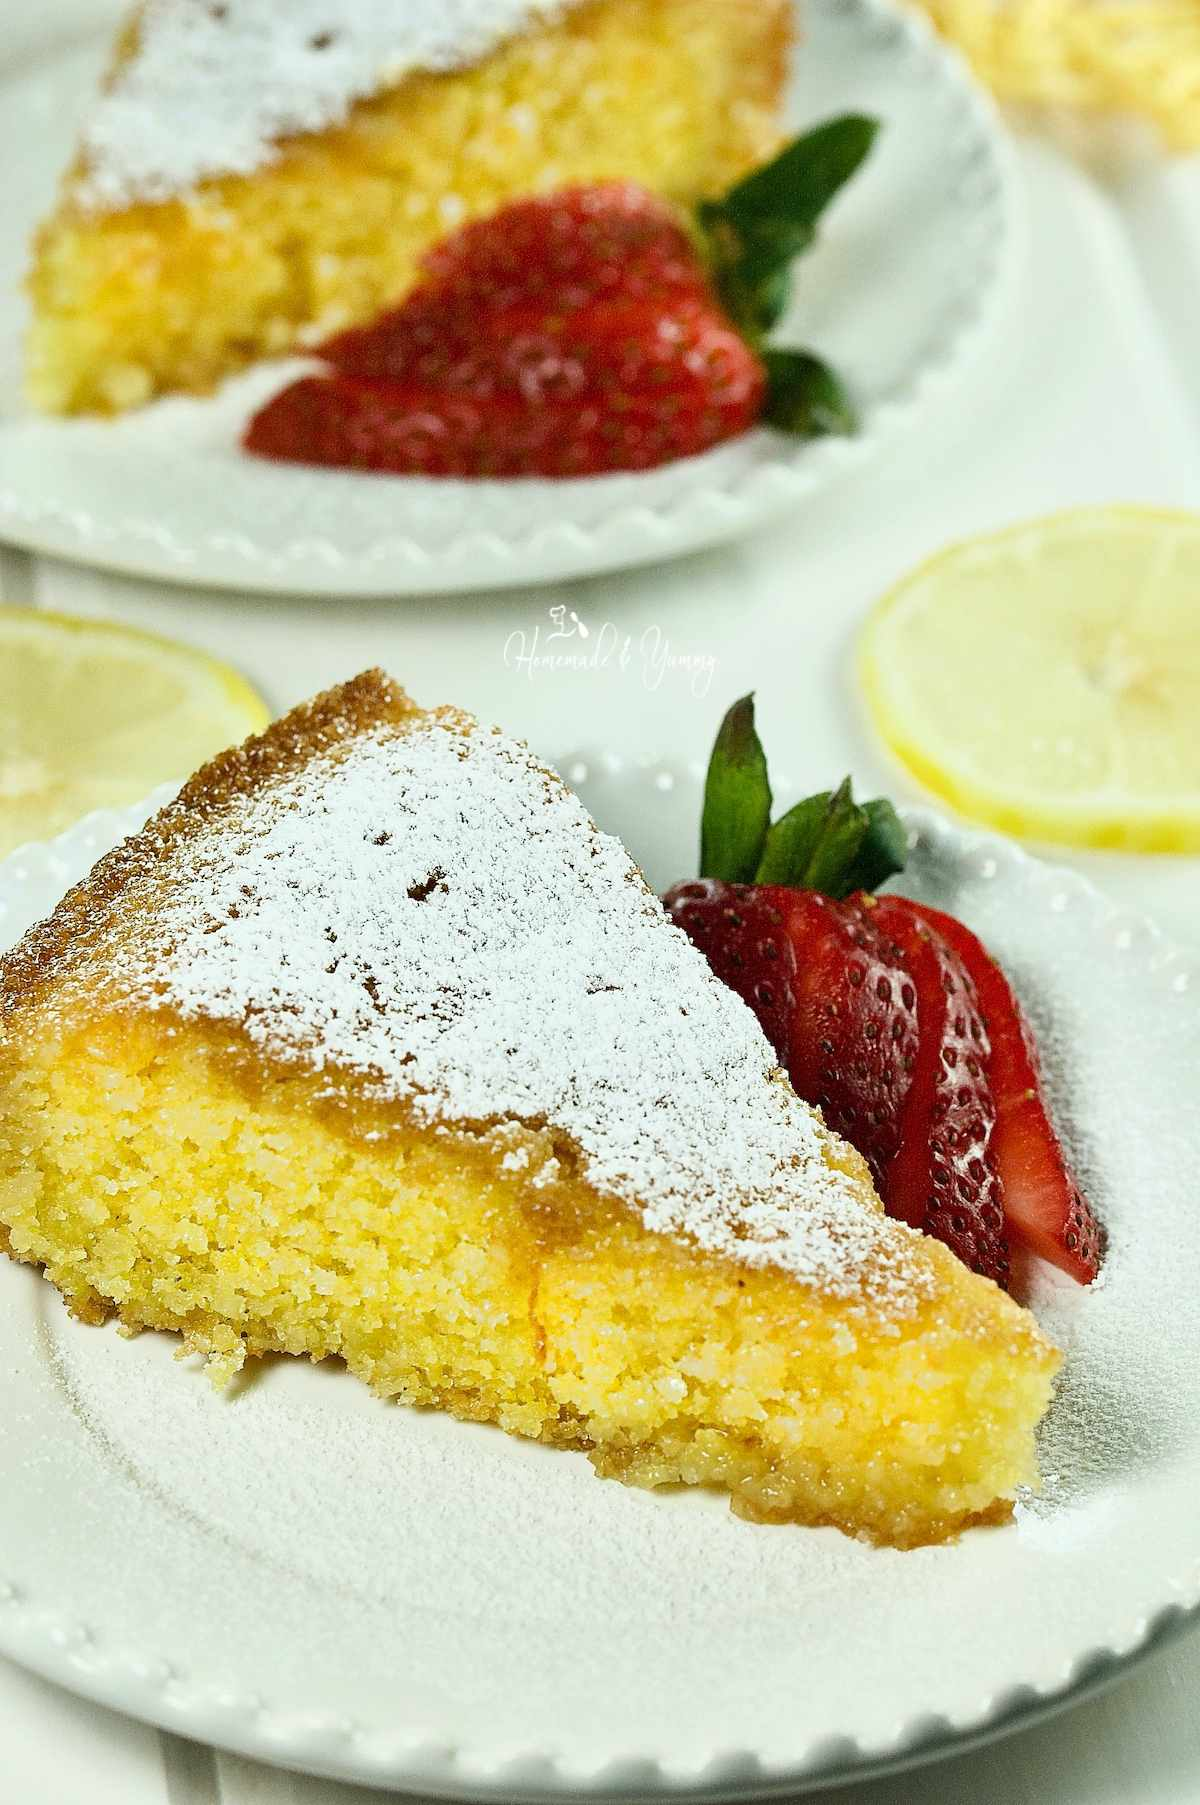 A slice of Lemon Polenta Cake on a plate